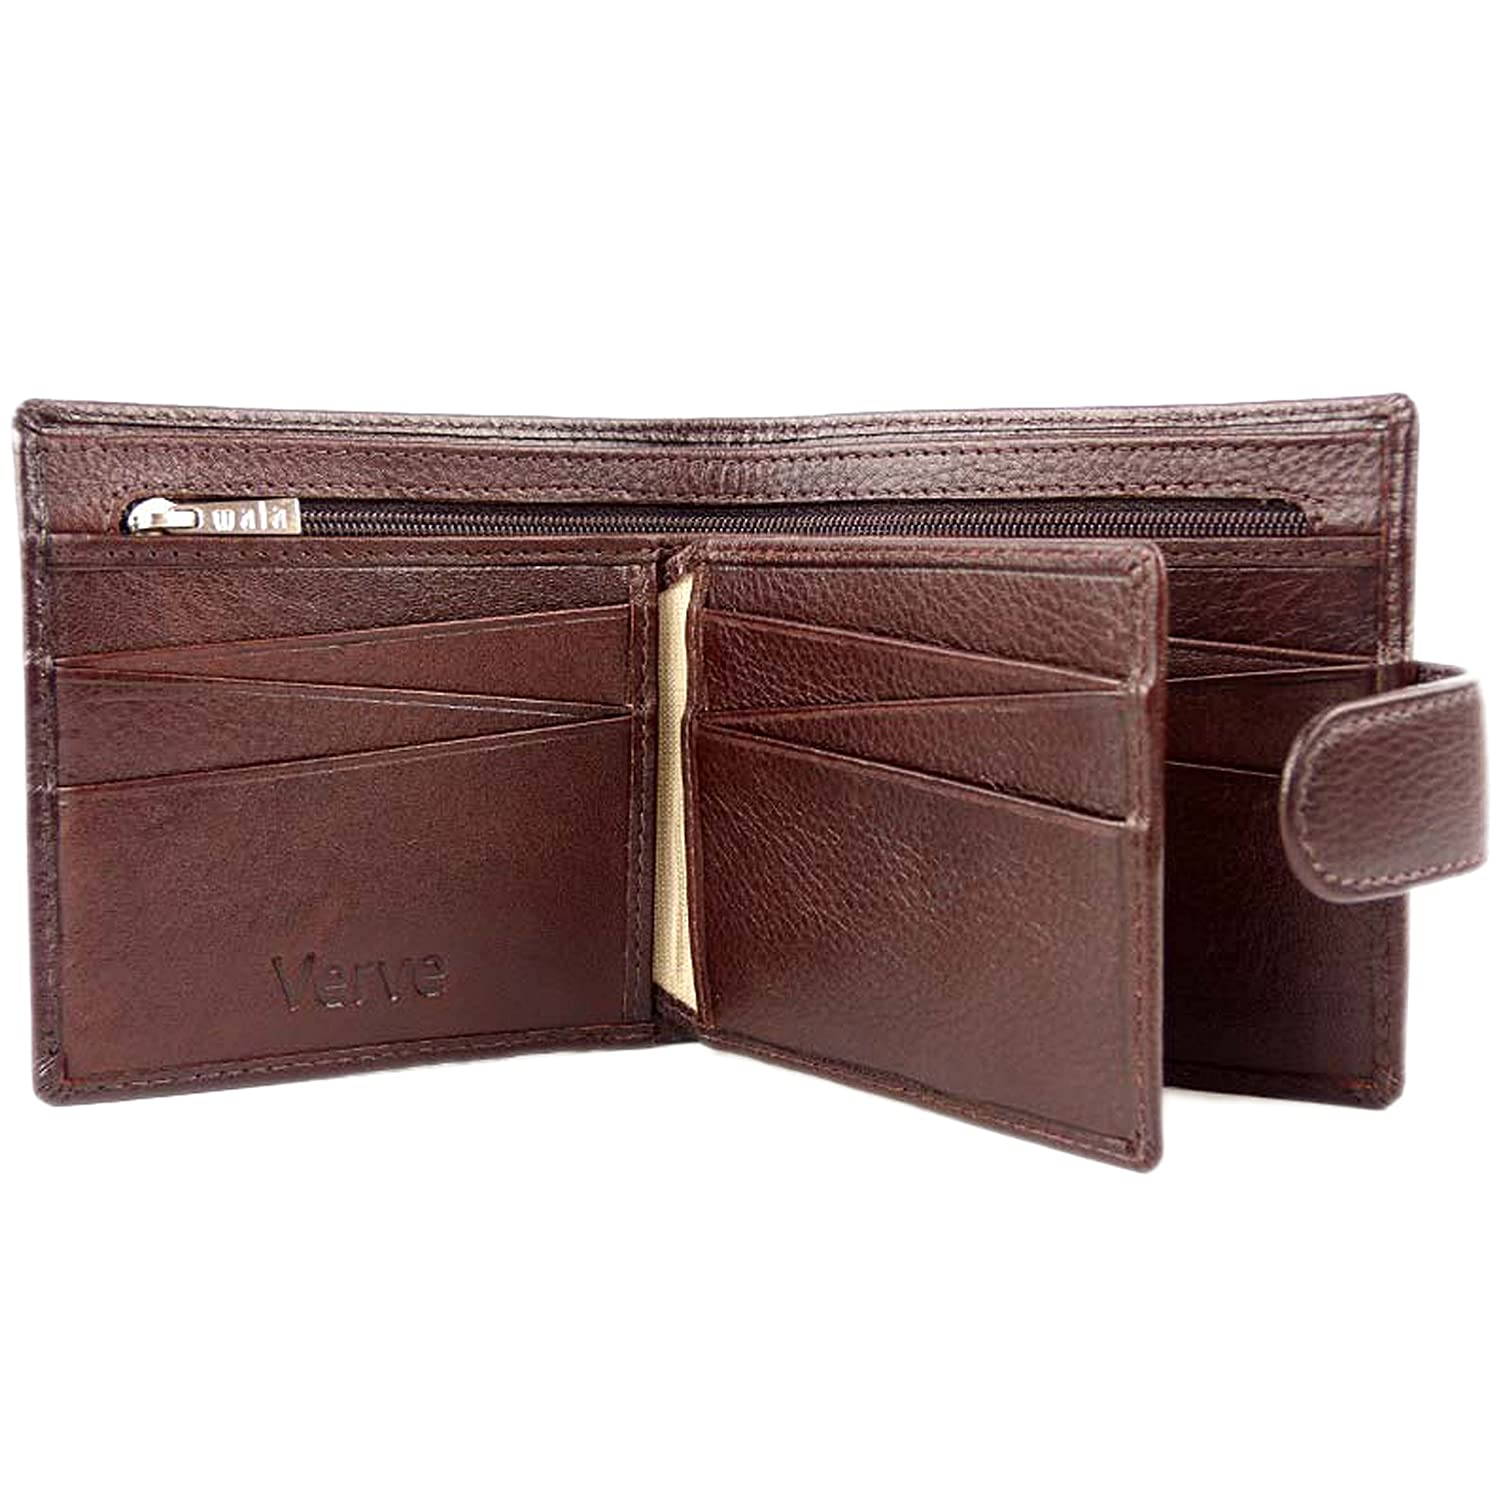 f9383395b74cd7 Mens Quality Brown LEATHER WALLET by VERVE Gift Boxed MALA 12 Card Slots:  Amazon.co.uk: Clothing